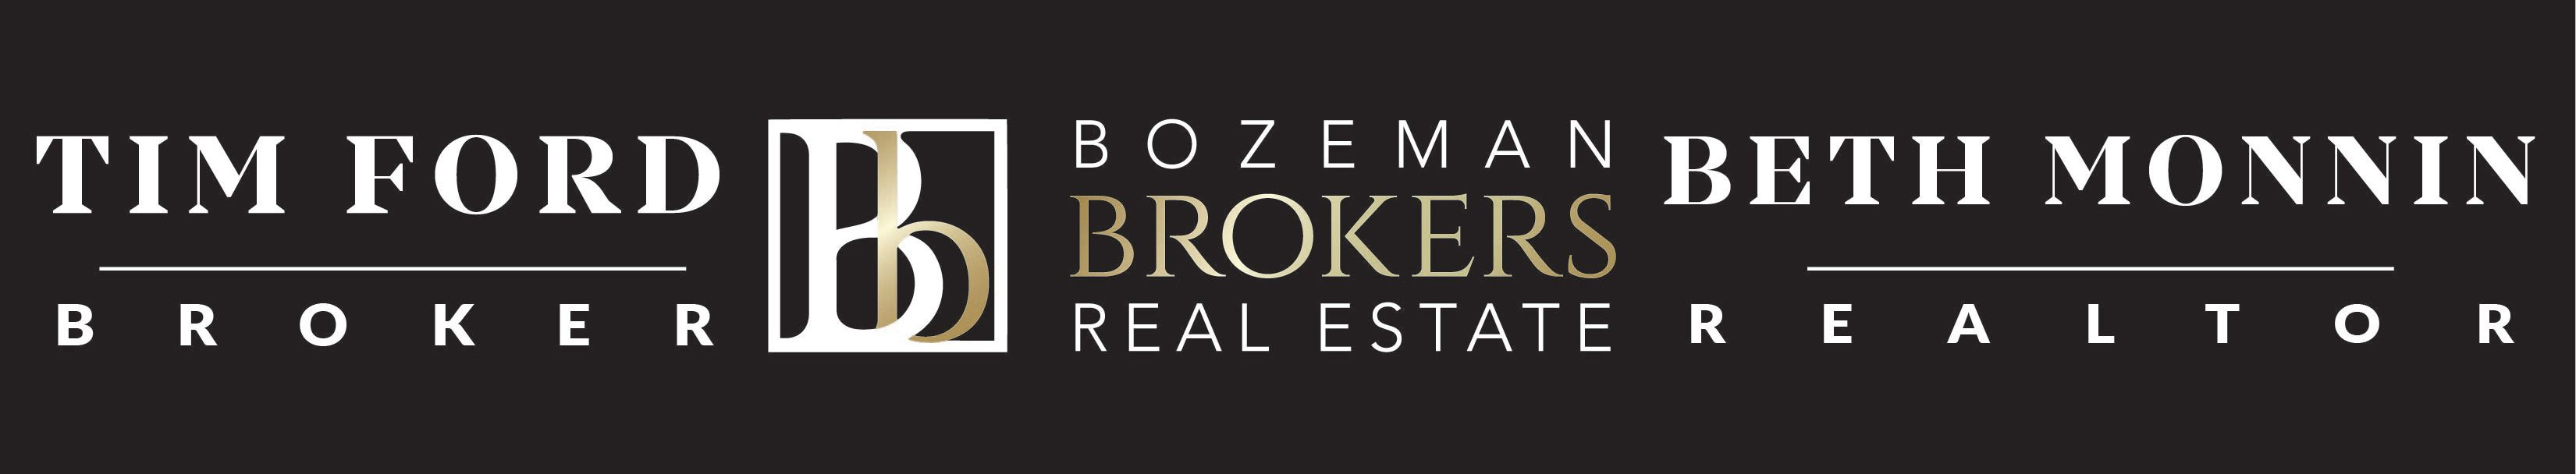 Bozeman Brokers